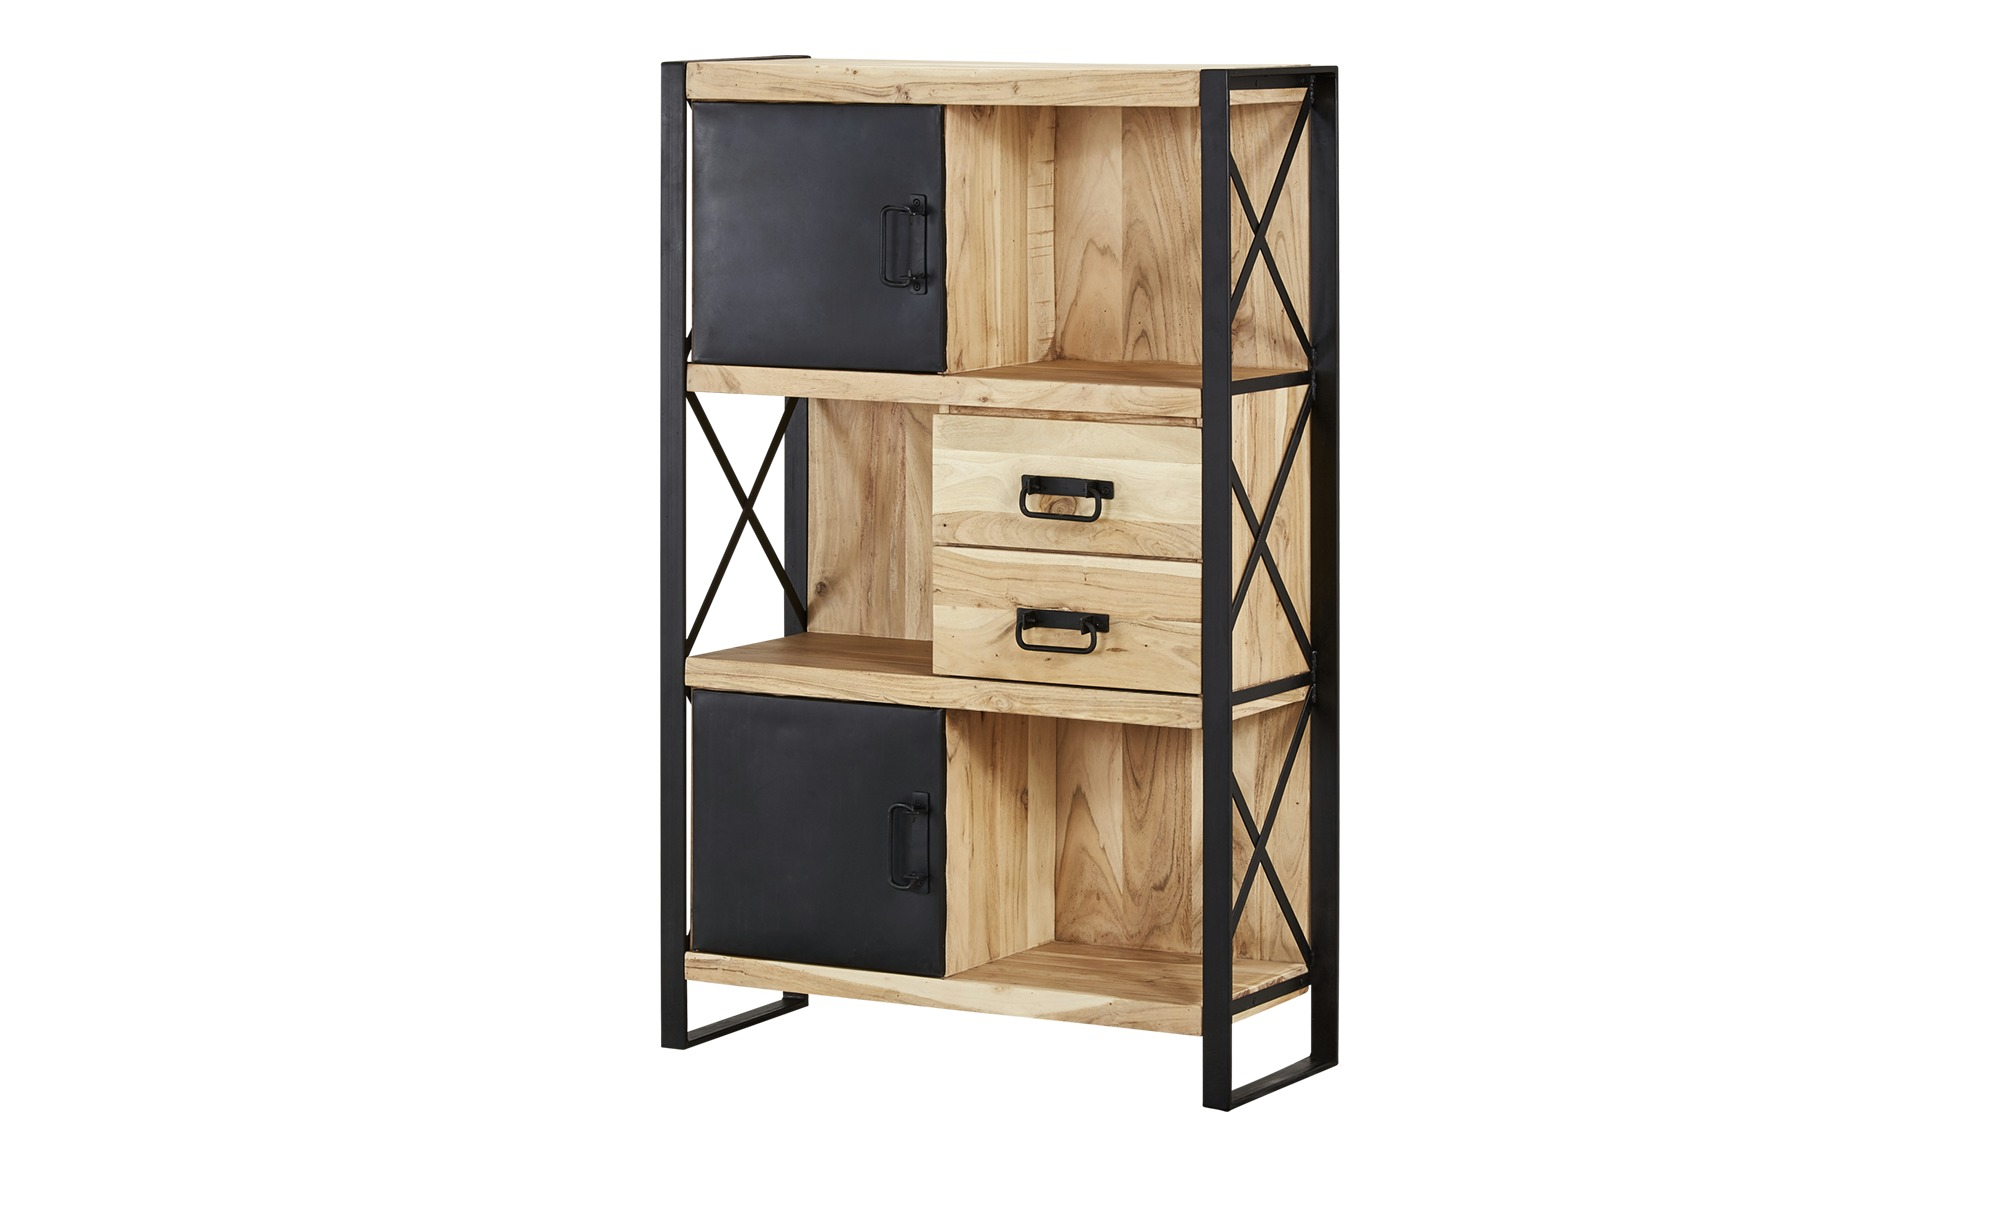 regal queens breite 90 cm h he 140 cm holzfarben online kaufen bei woonio. Black Bedroom Furniture Sets. Home Design Ideas